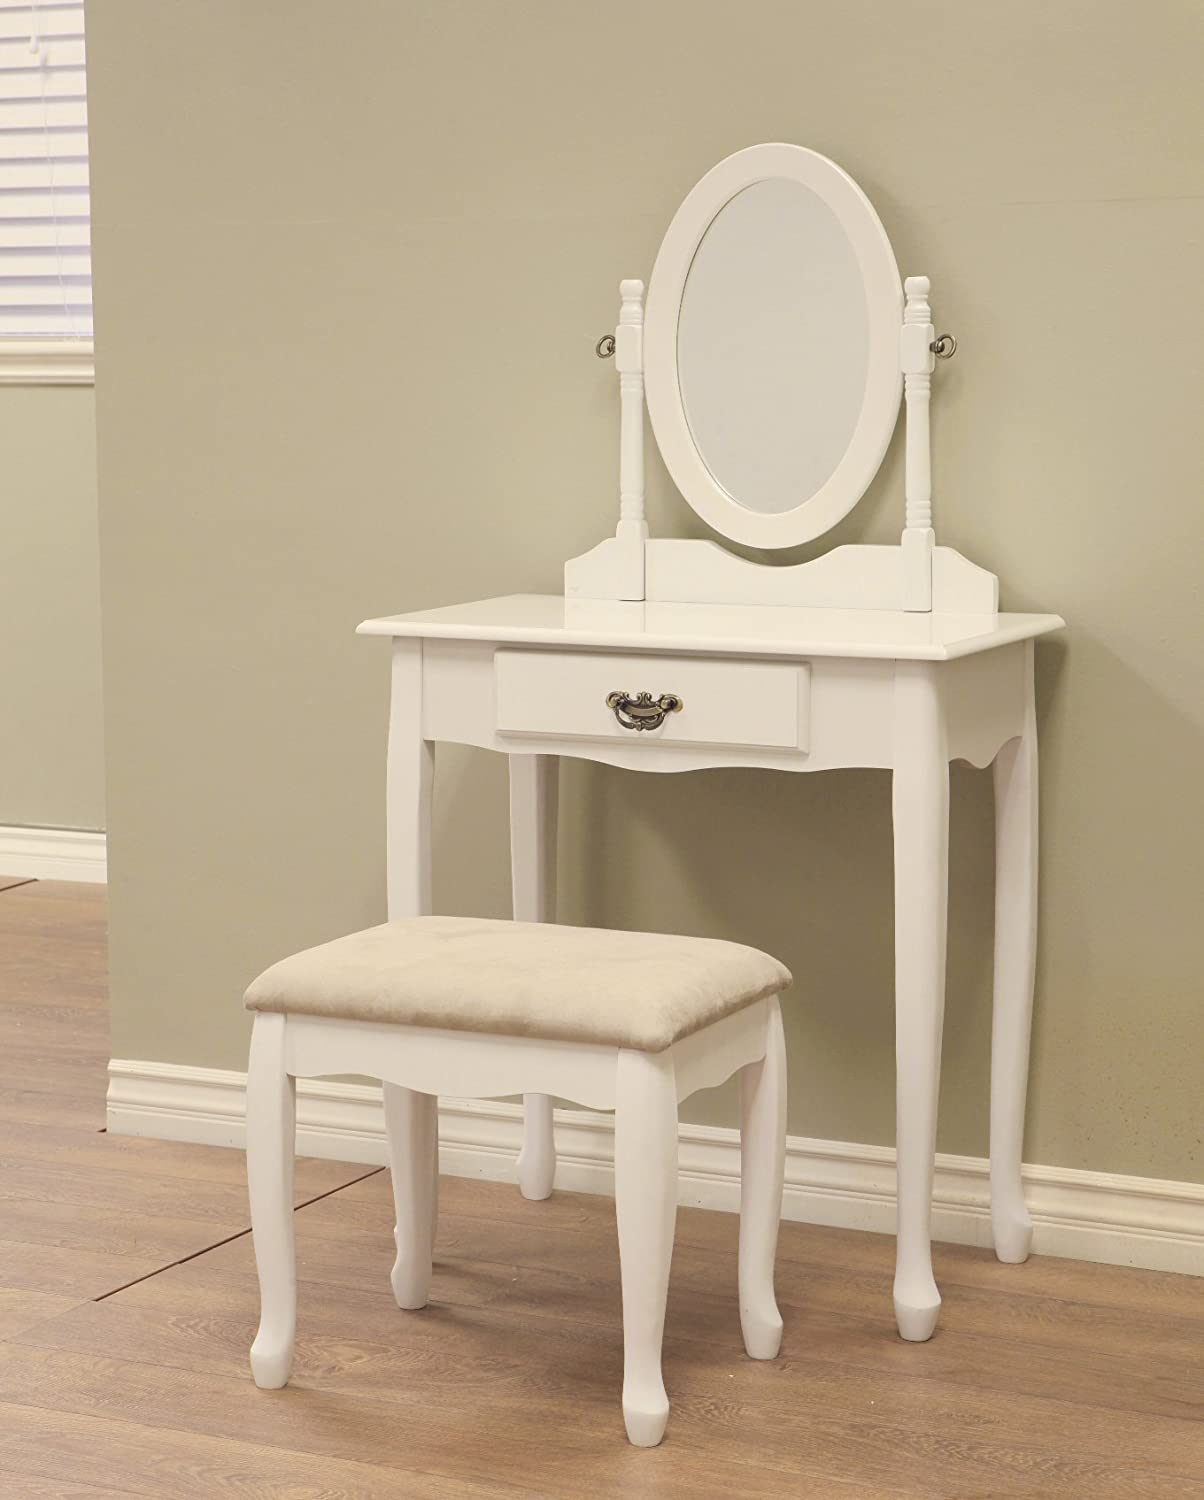 Amazon.com: Frenchi Home Furnishing Wood 3-Piece Vanity Set, White ...